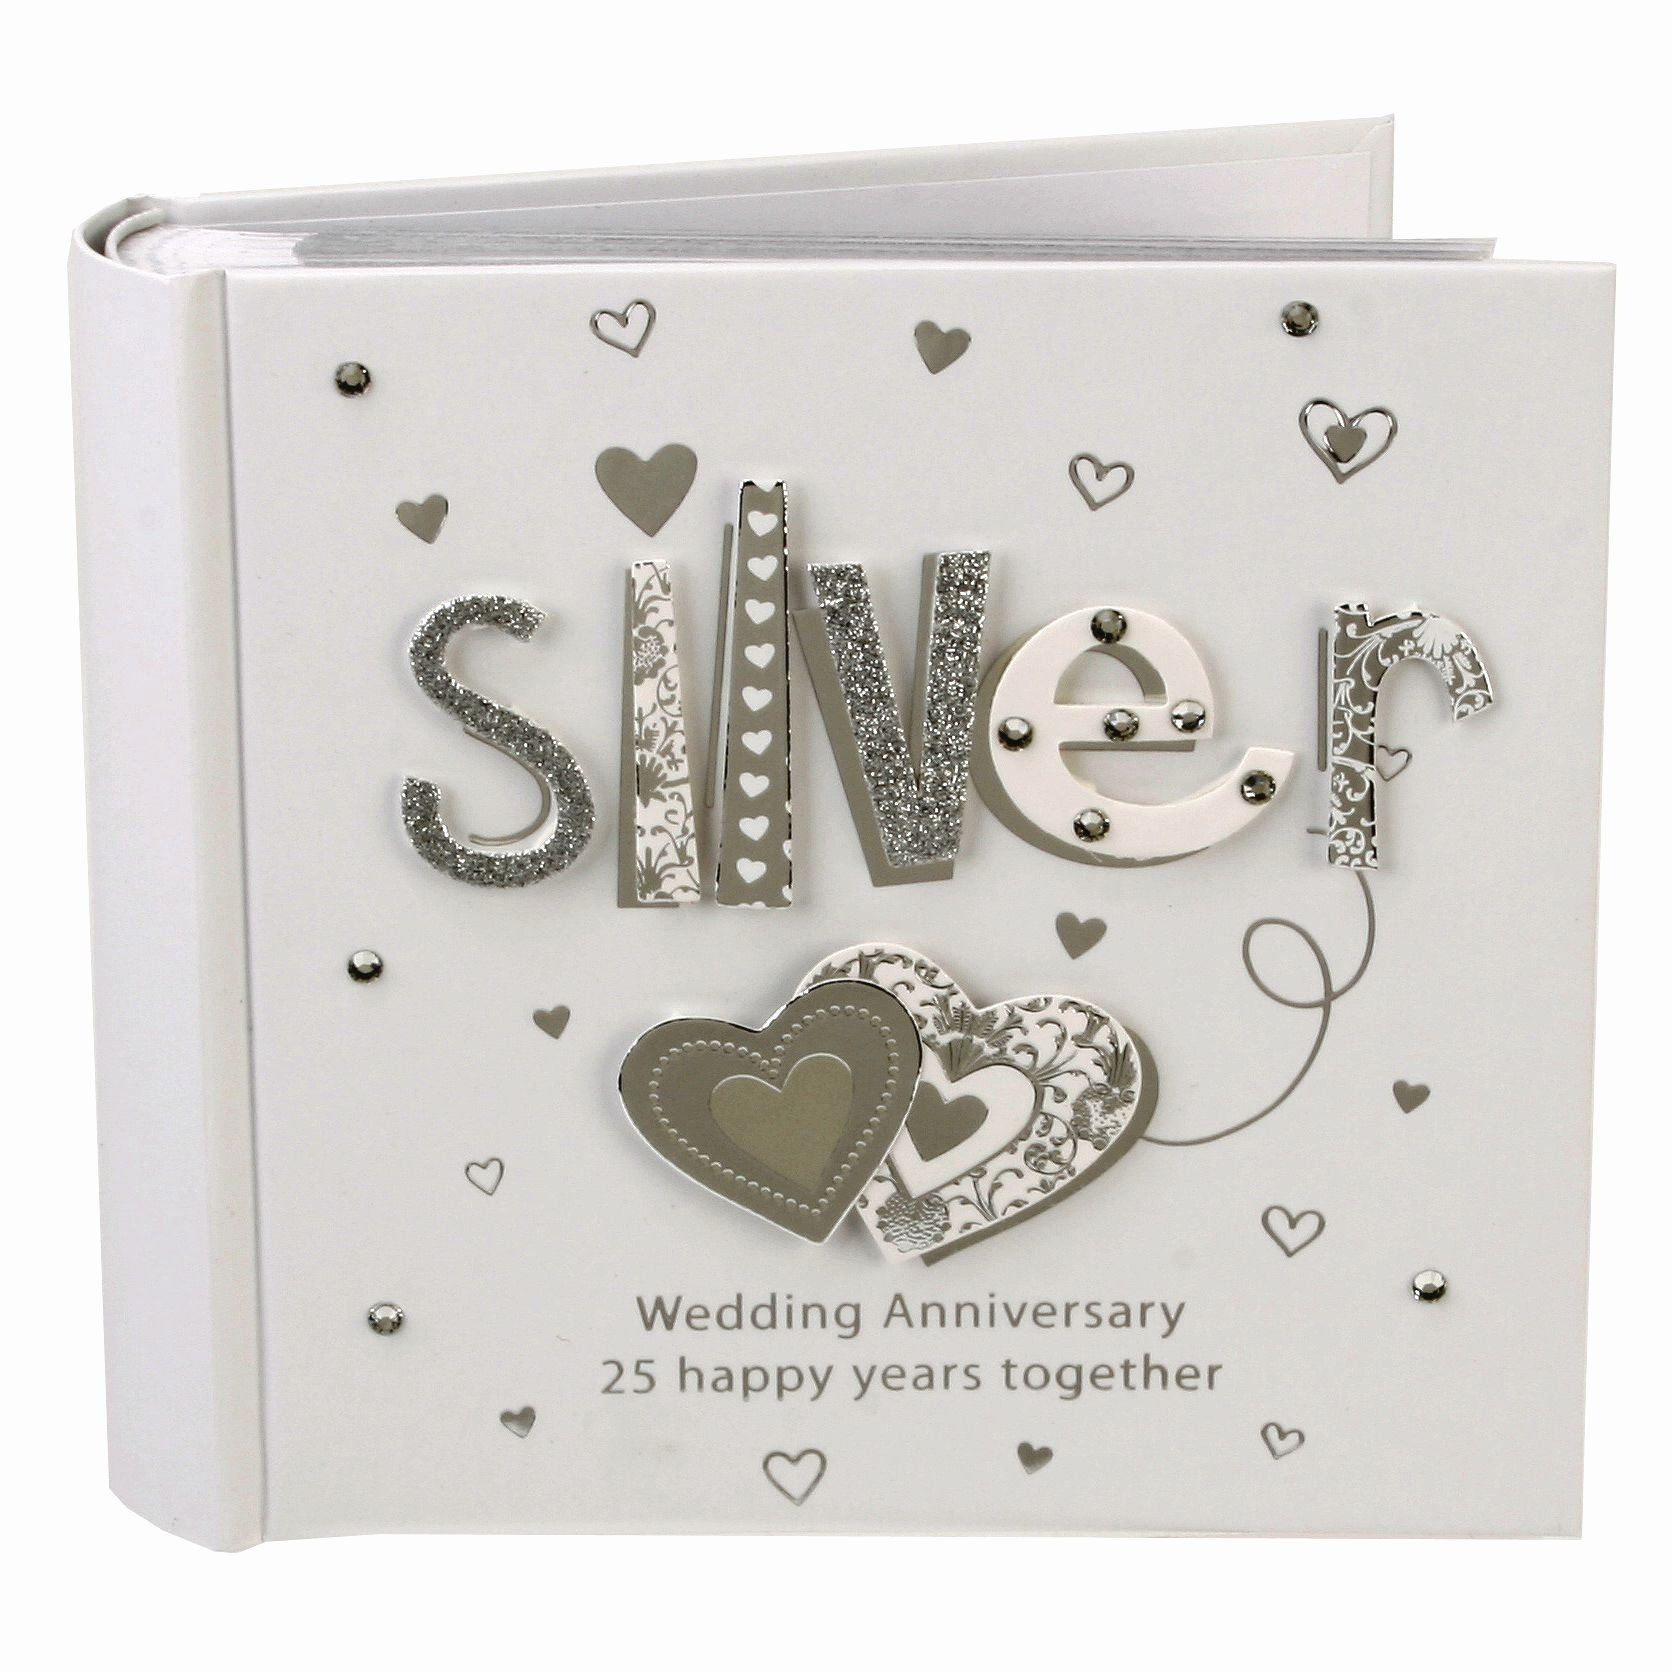 10 Elegant 25Th Anniversary Gift Ideas For Wife 15th wedding anniversary gift ideas for her awesome successful tips 2020